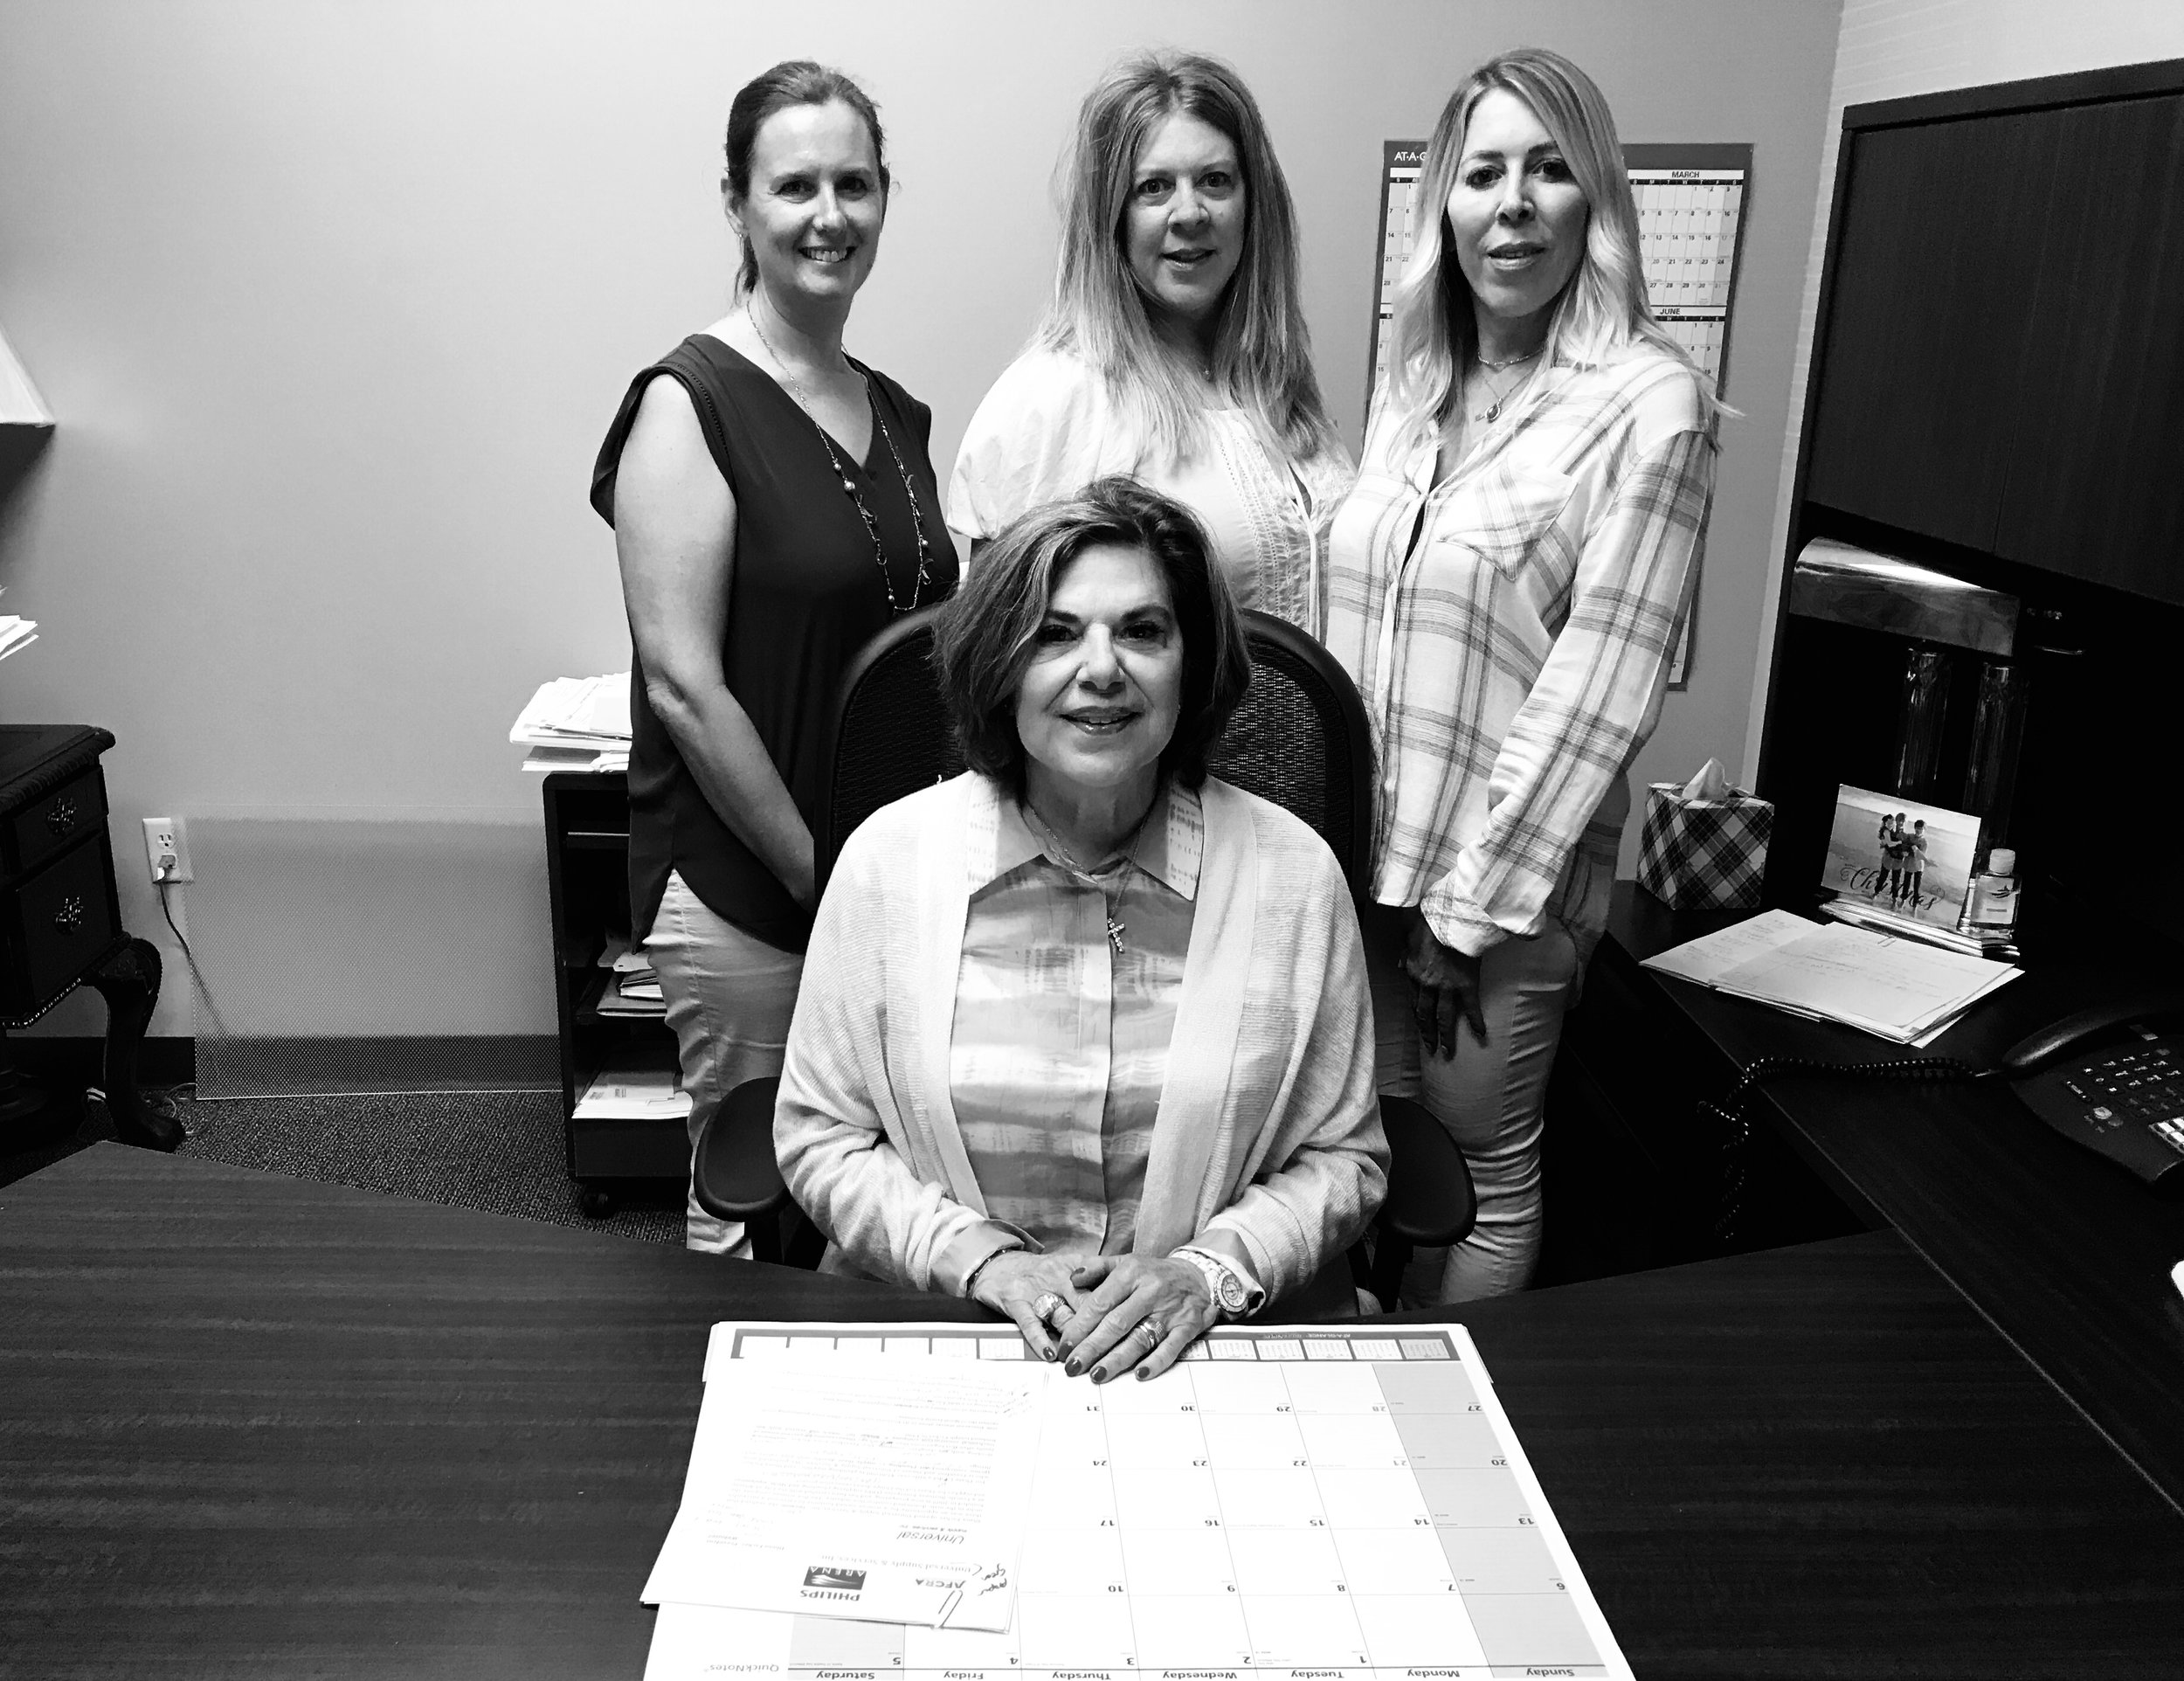 Universal Services and Supply, Inc., President Diana Escher (seated) with her staff .